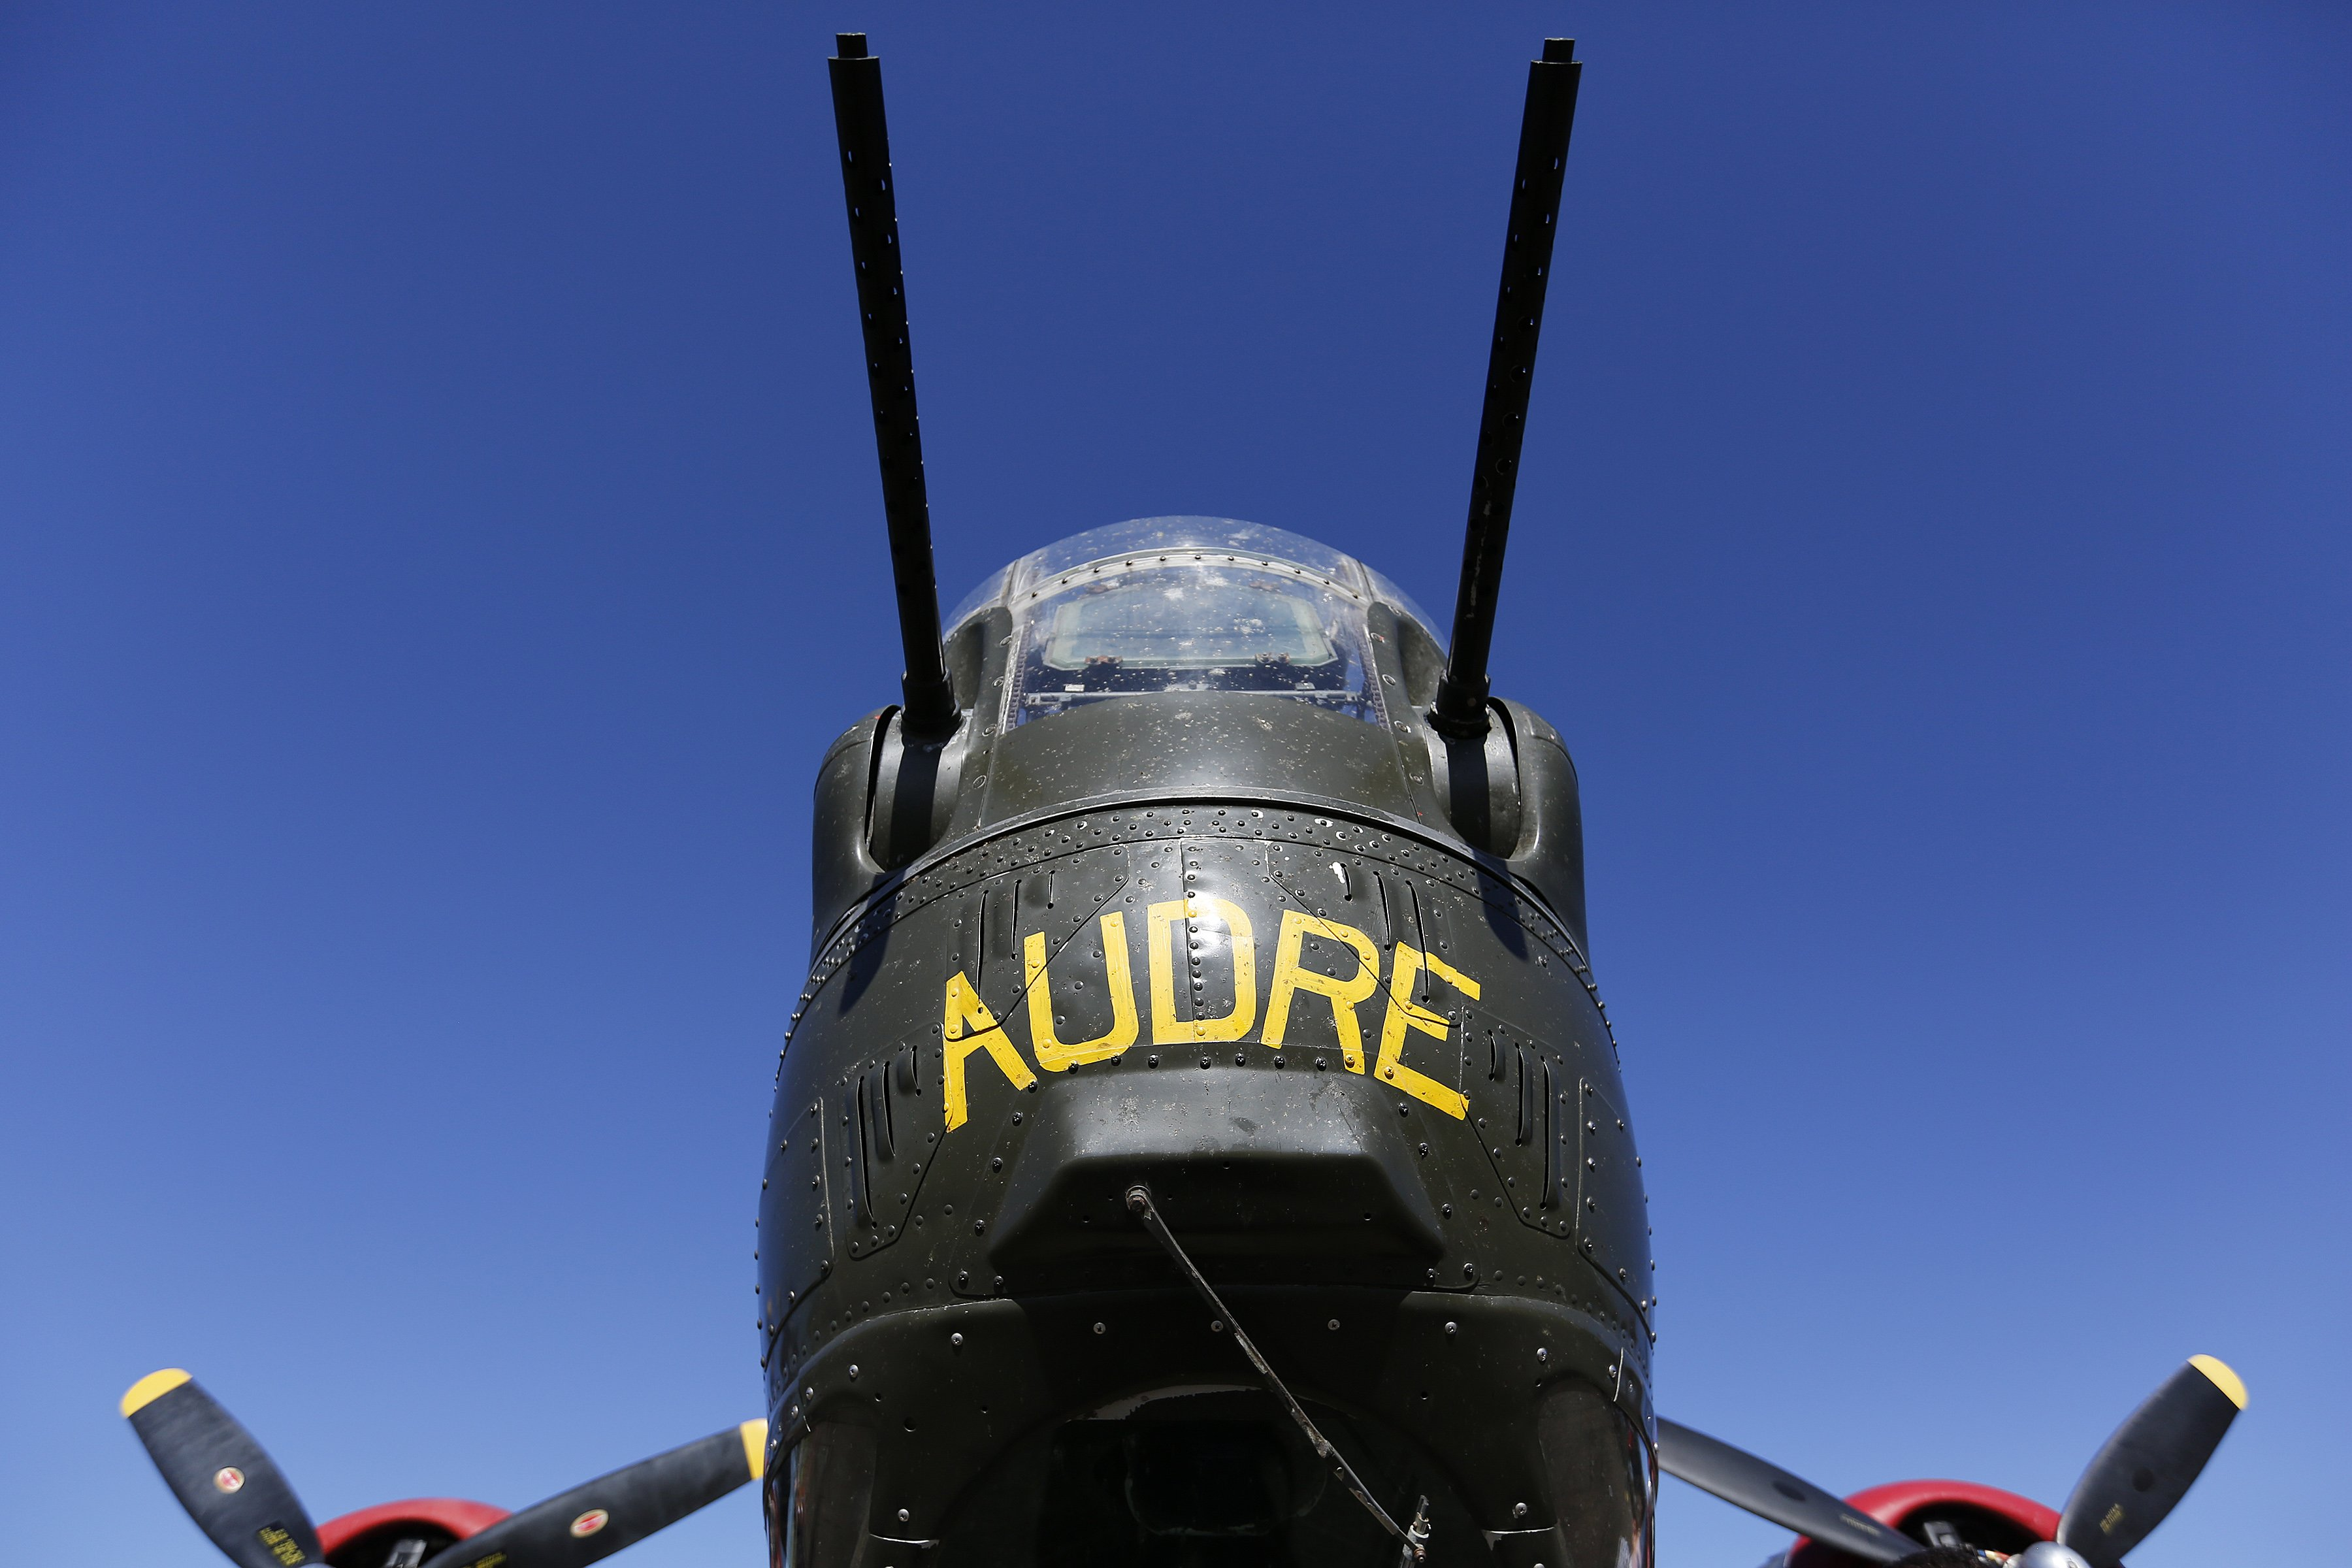 A detail look at the nose of the world's only flying B-24J Liberator during the Wings of Freedom Tour at Raleigh-Durham International Airport, October 19, 2017. Hosted by the Collings Foundation, Wings of Freedom visits more than 100 cities a year to show off working pieces of American war history as well as to educate people about the veterans of WWII. The tour will be in Burlington, NC until 12 pm on Oct. 25 and then move to Statesville, NC through Oct. 27. (Eamon Queeney / North State Journal)